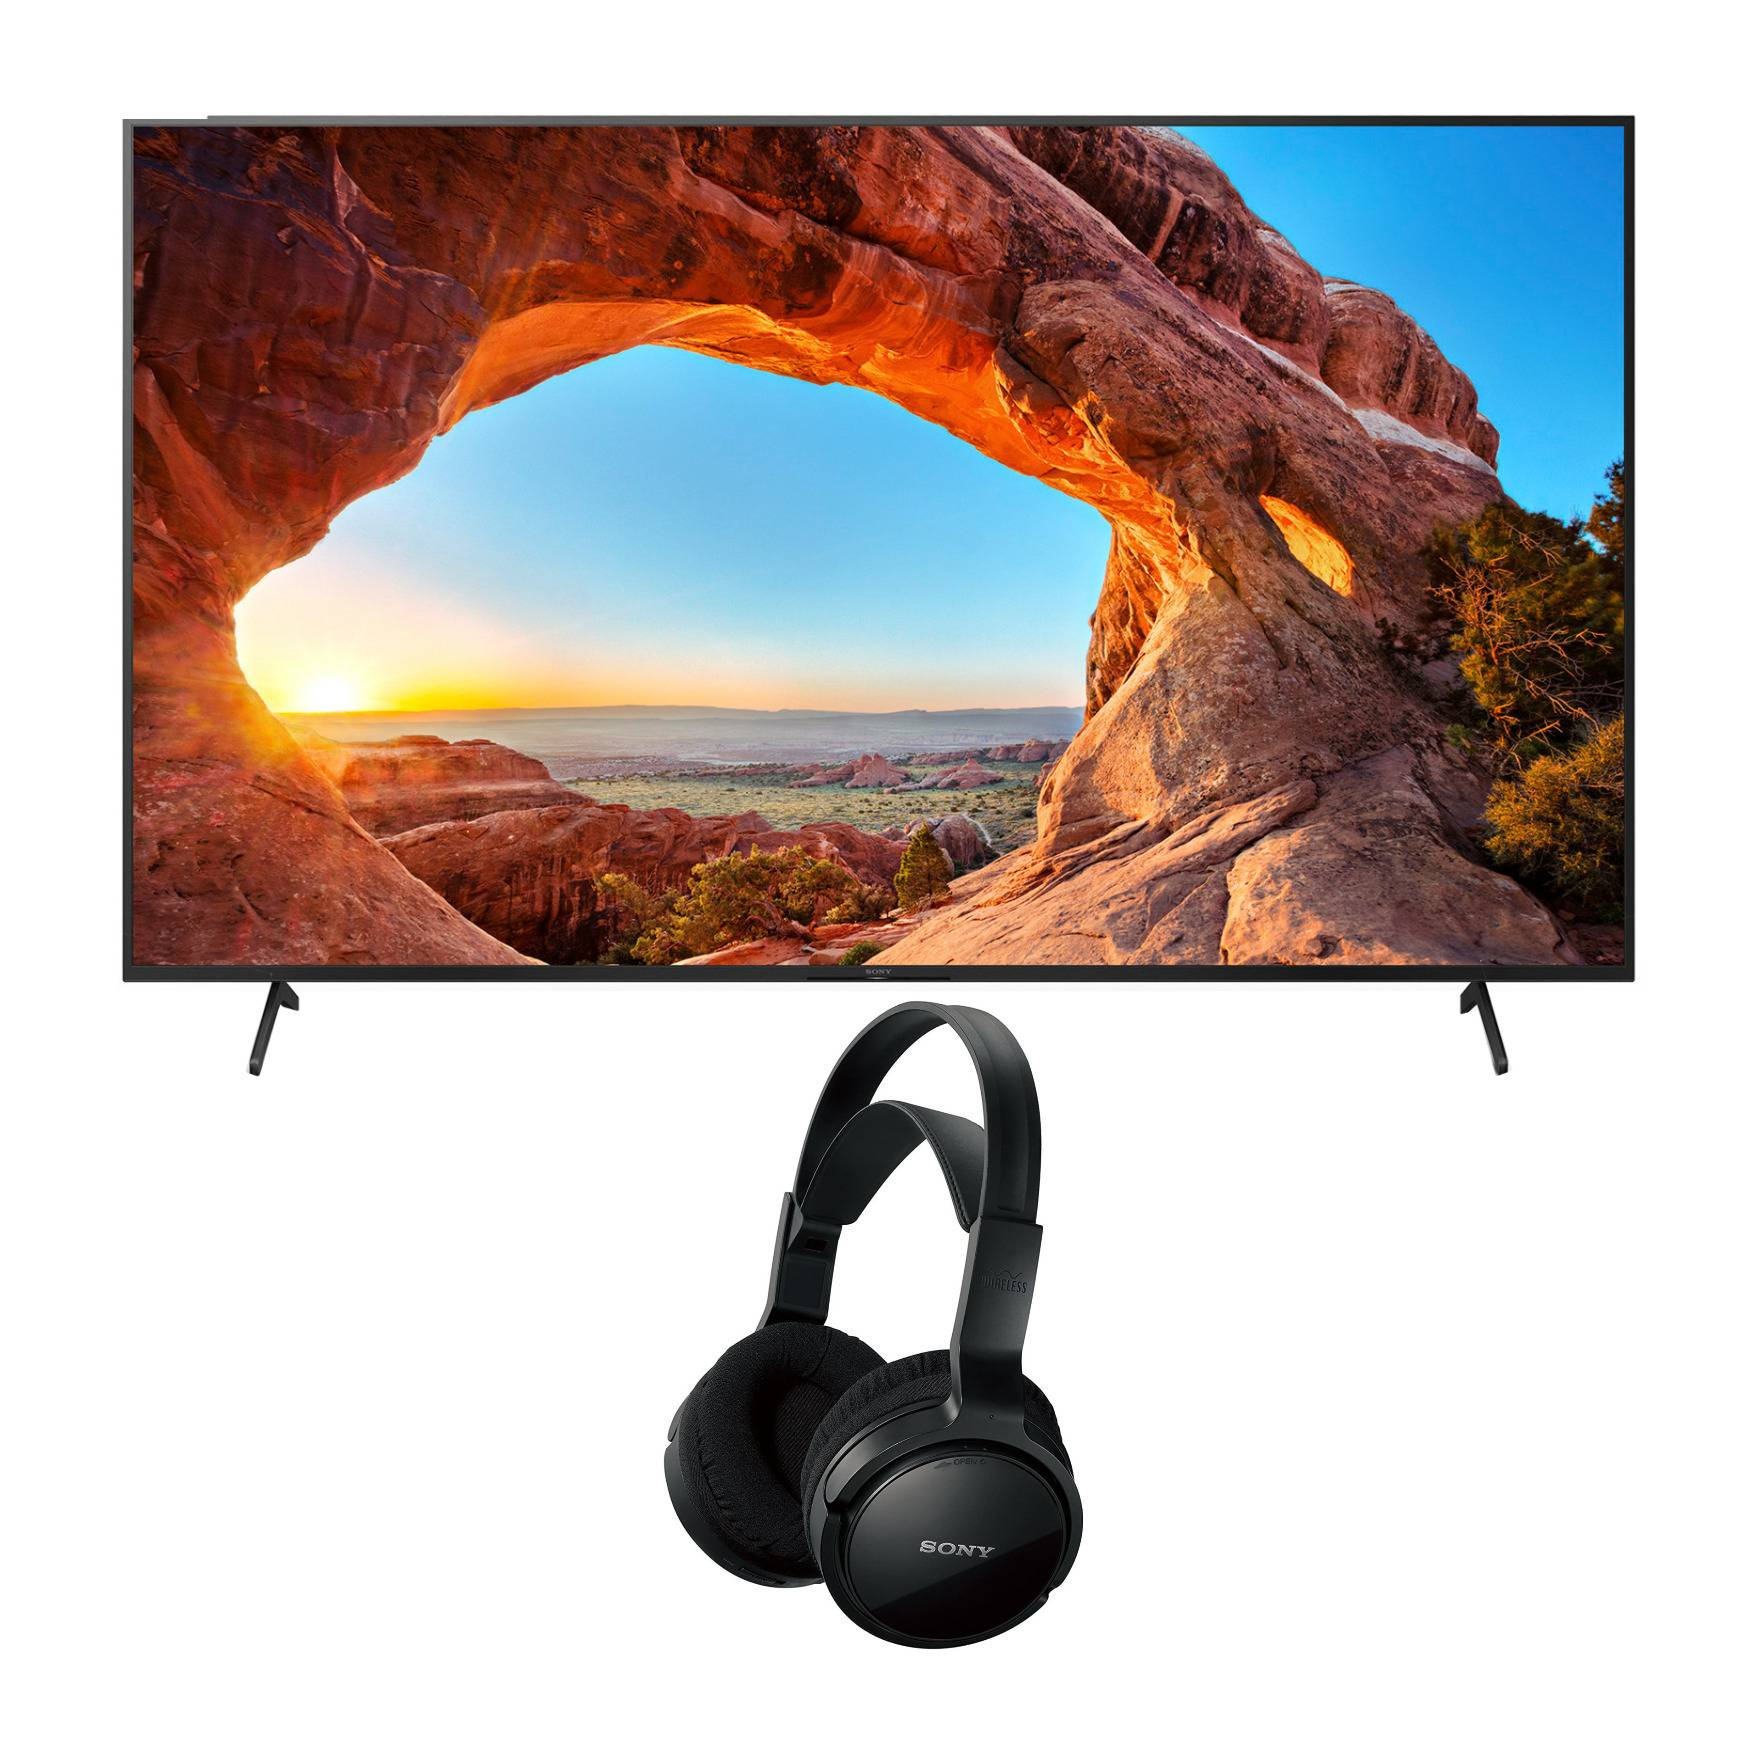 Sony X85J 85 Inch TV 4K Ultra HD LED Smart TV with HDR (2021) with Home Theater Headphones in Black